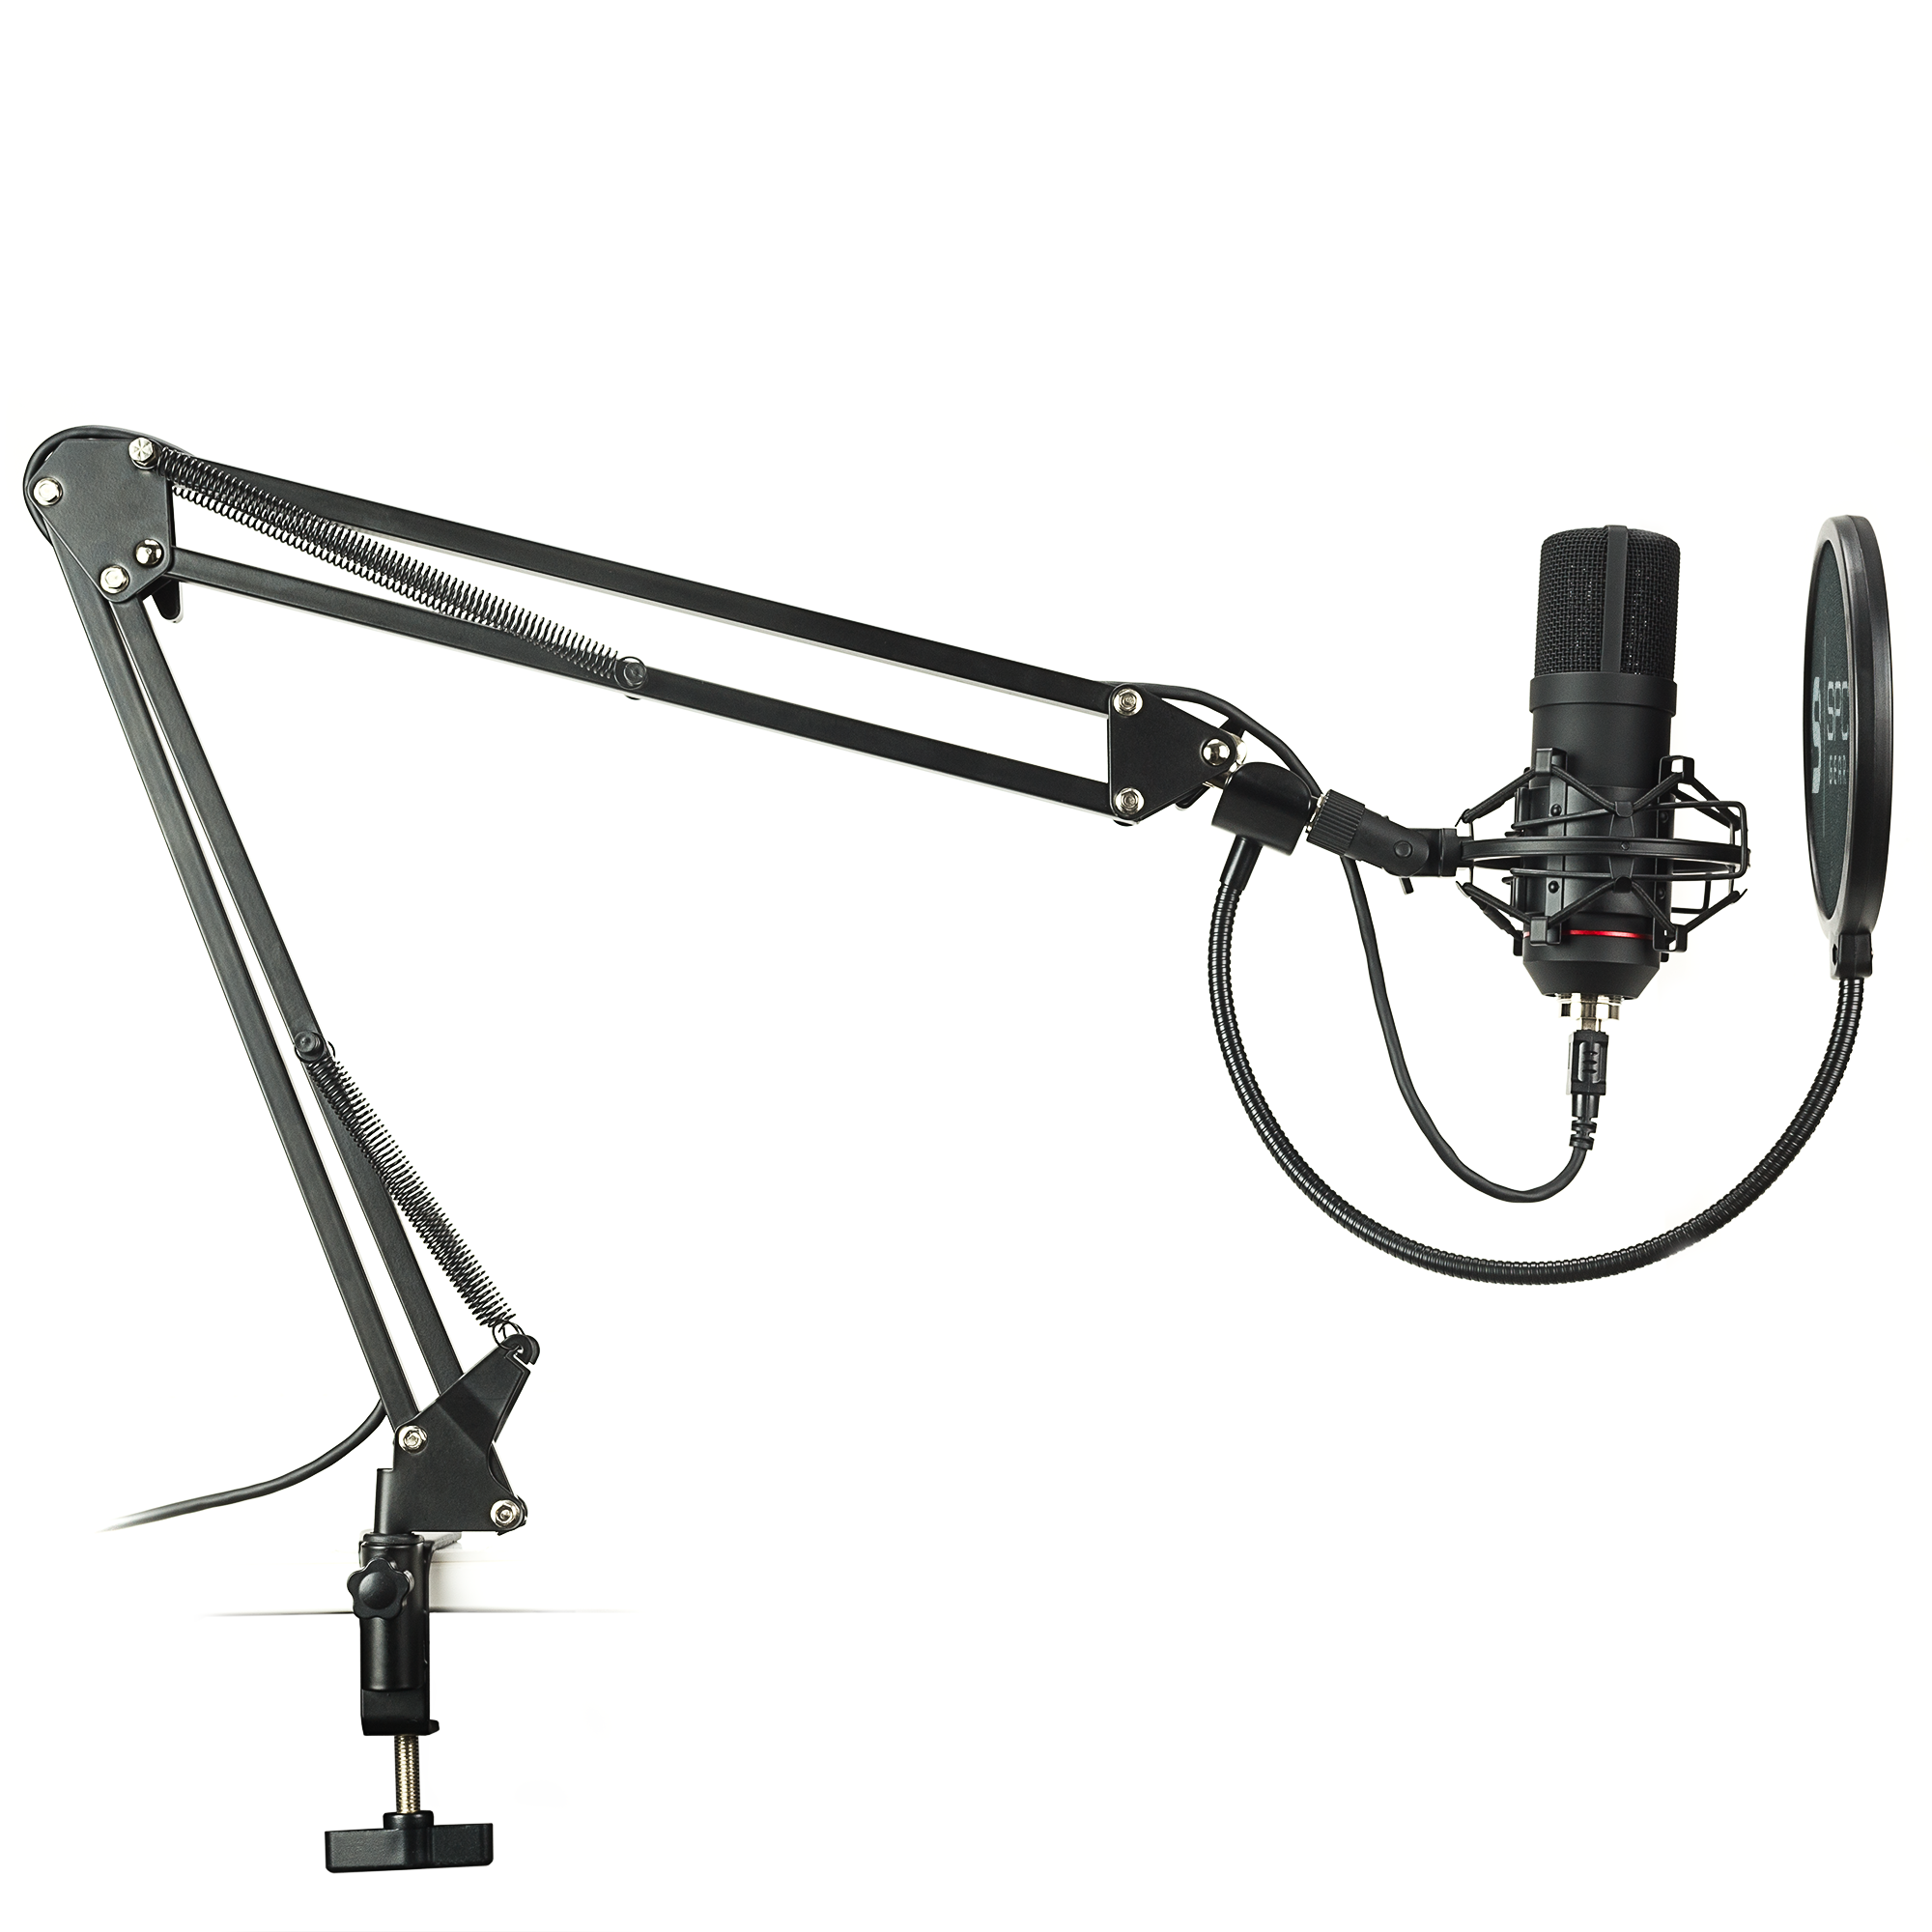 sm900 streaming usb microphone spc gear. Black Bedroom Furniture Sets. Home Design Ideas